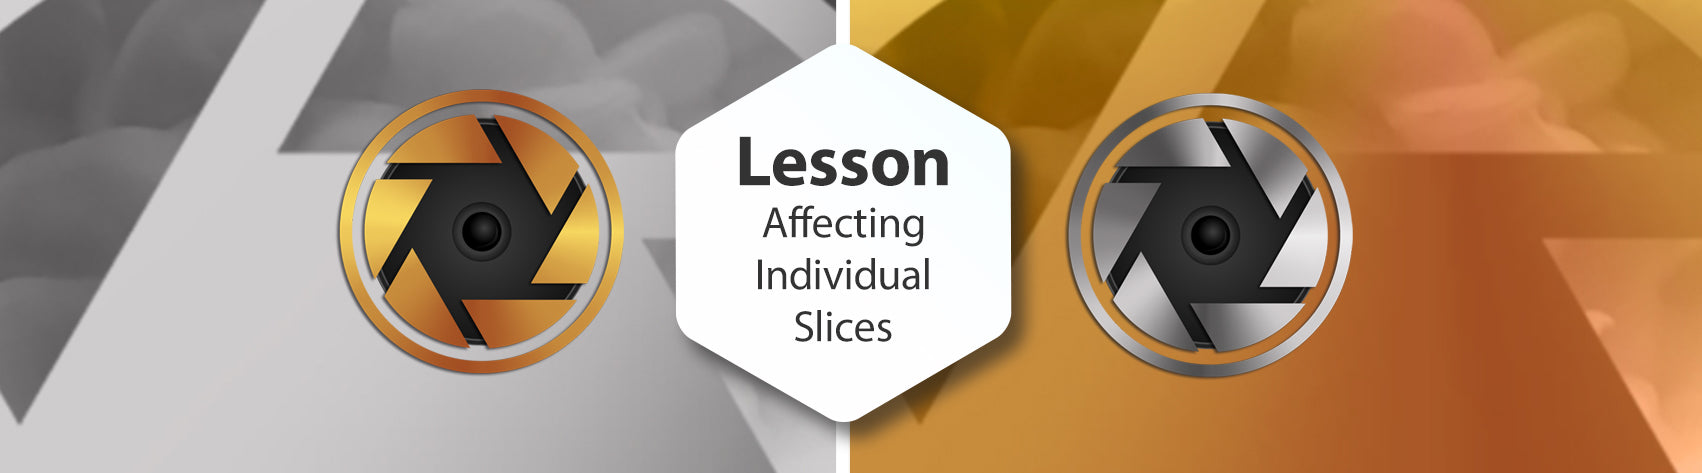 Lesson - Affecting Individual Slices (Director Only)